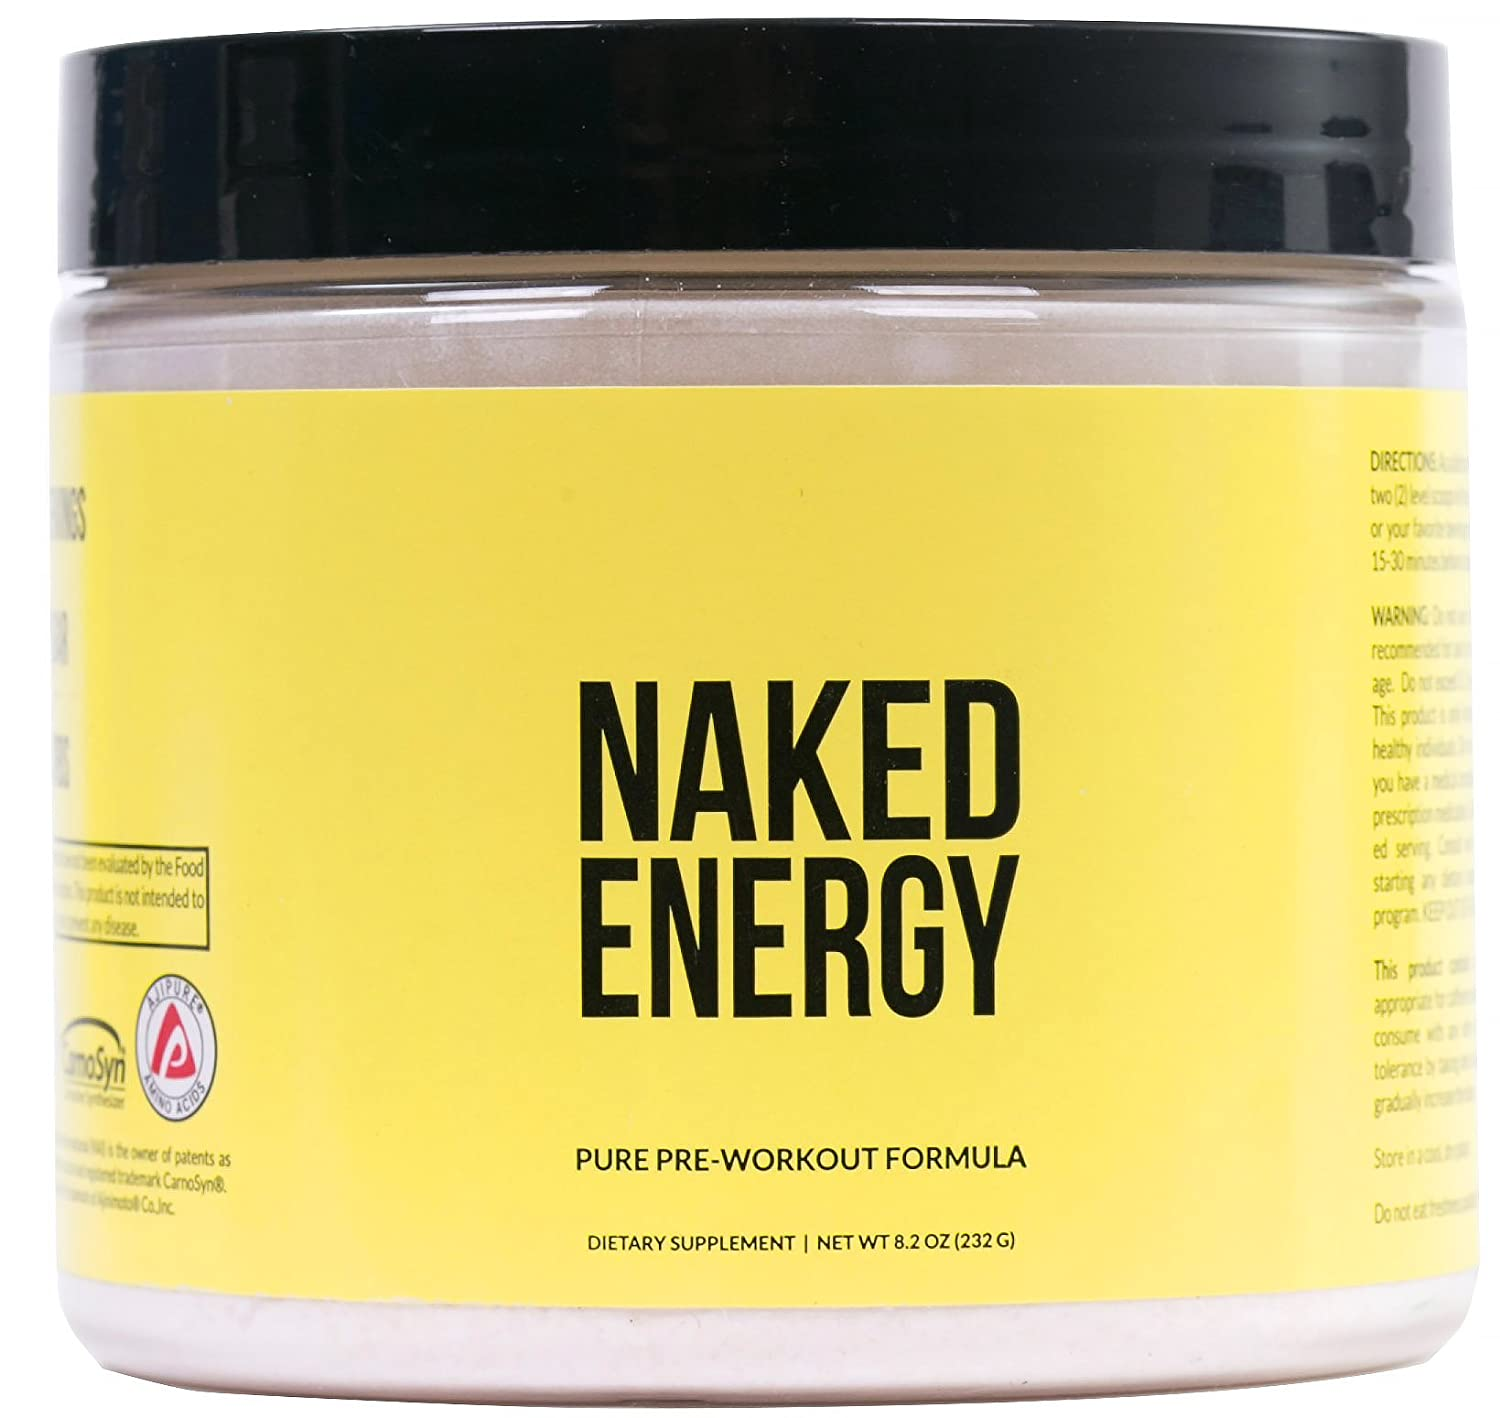 NAKED Nutrition Naked Energy Pre-Workout Powder review